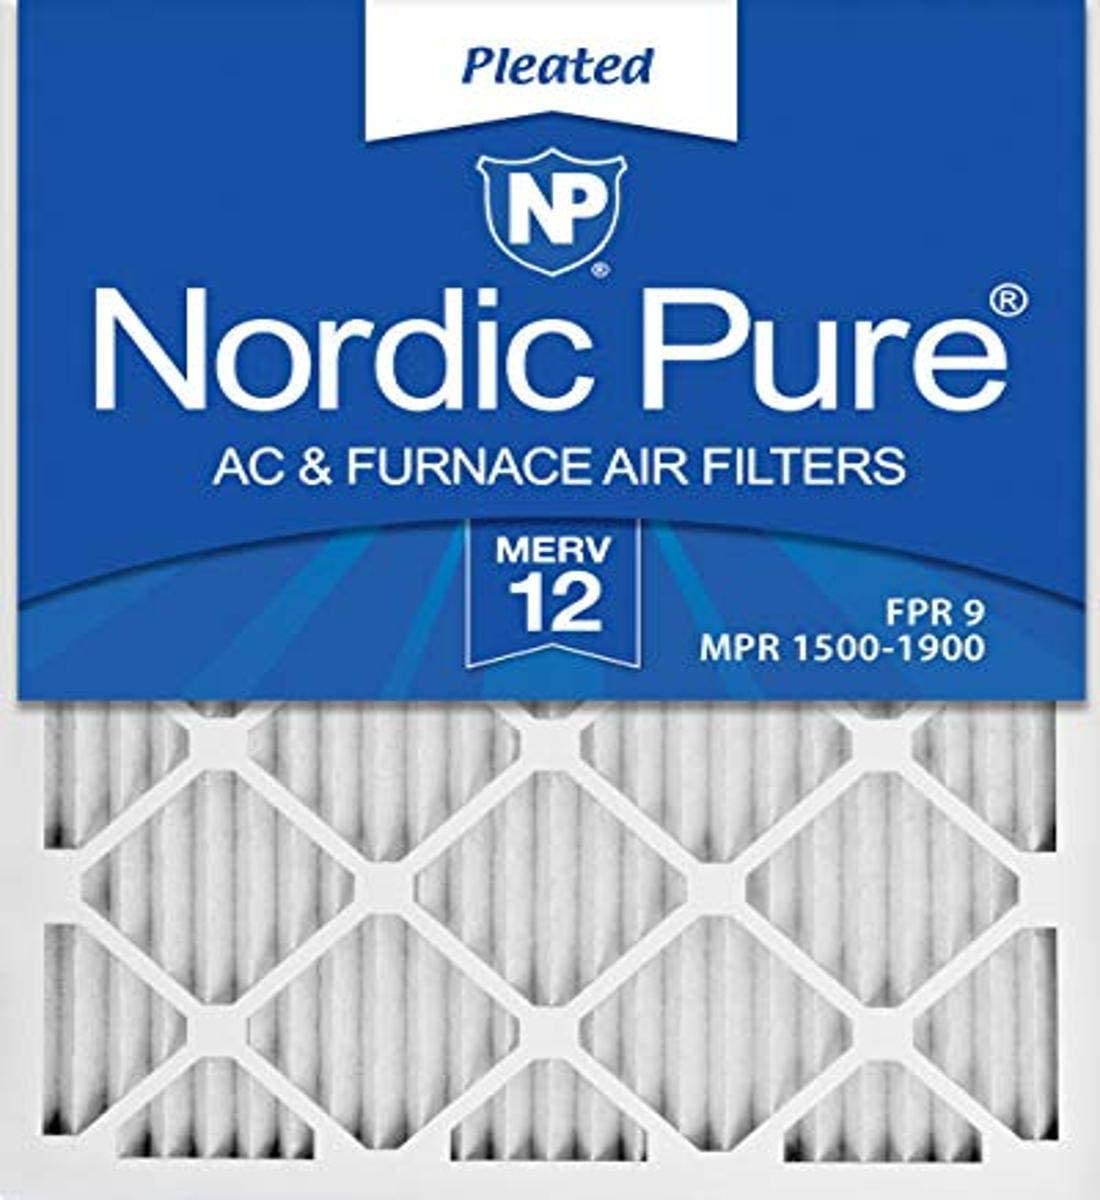 Nordic Pure 13x20x1 Exact MERV 11 Pleated AC Furnace Air Filters 6 Pack